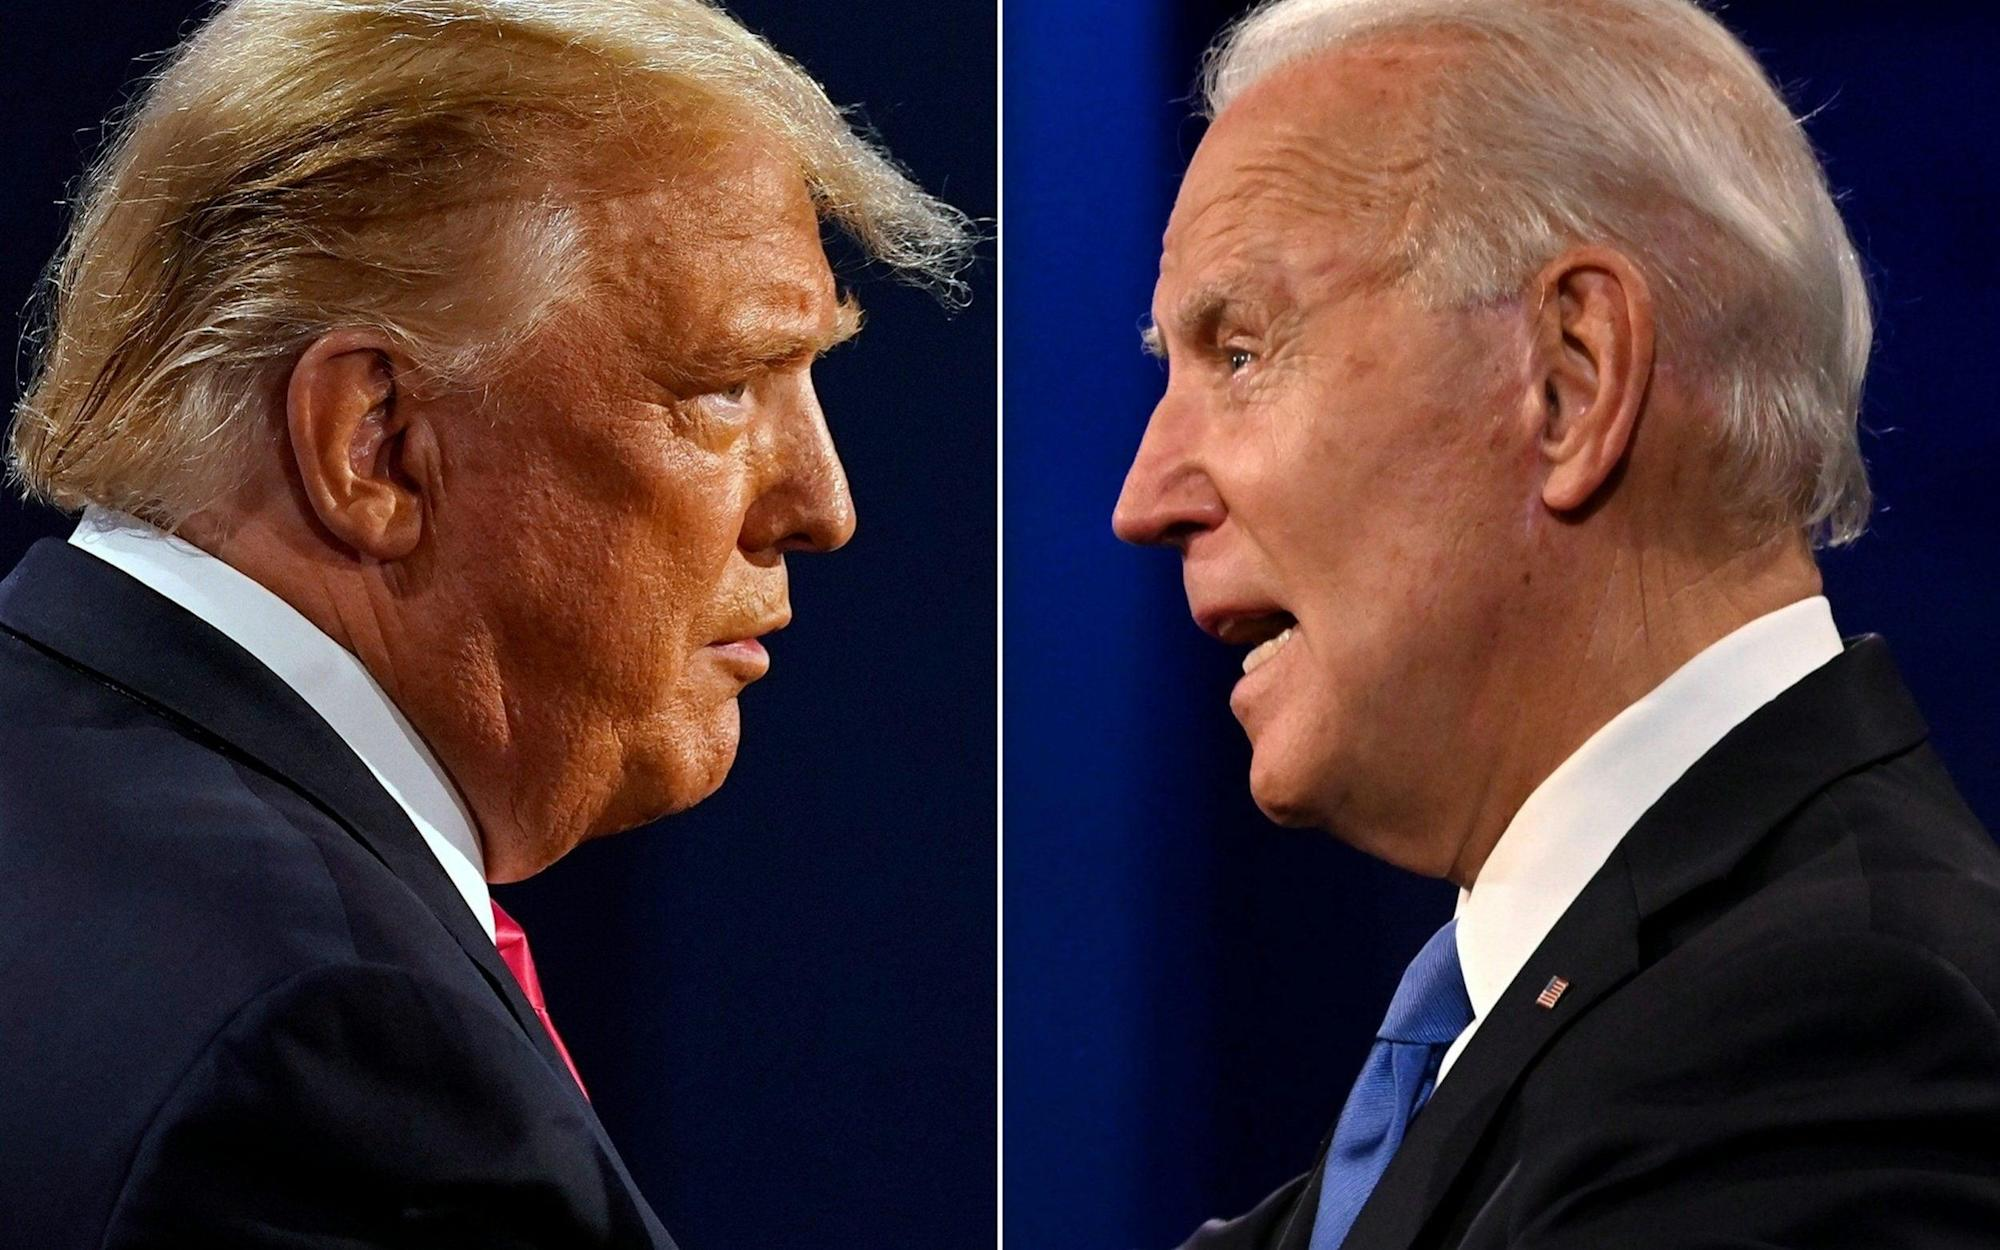 What the US election means for the special relationship - would Trump or Biden be best for the UK?